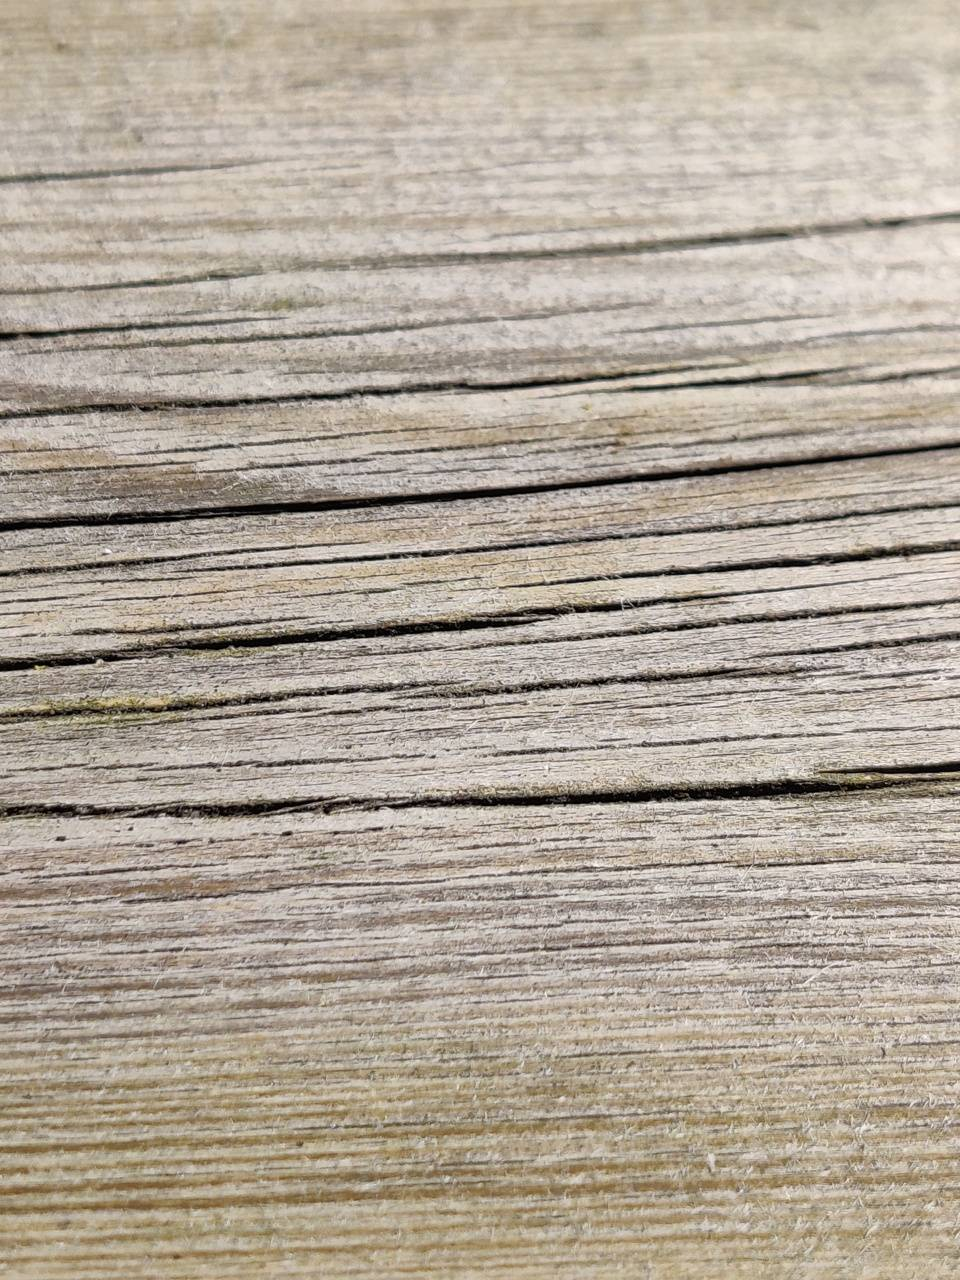 Withered woodgrain